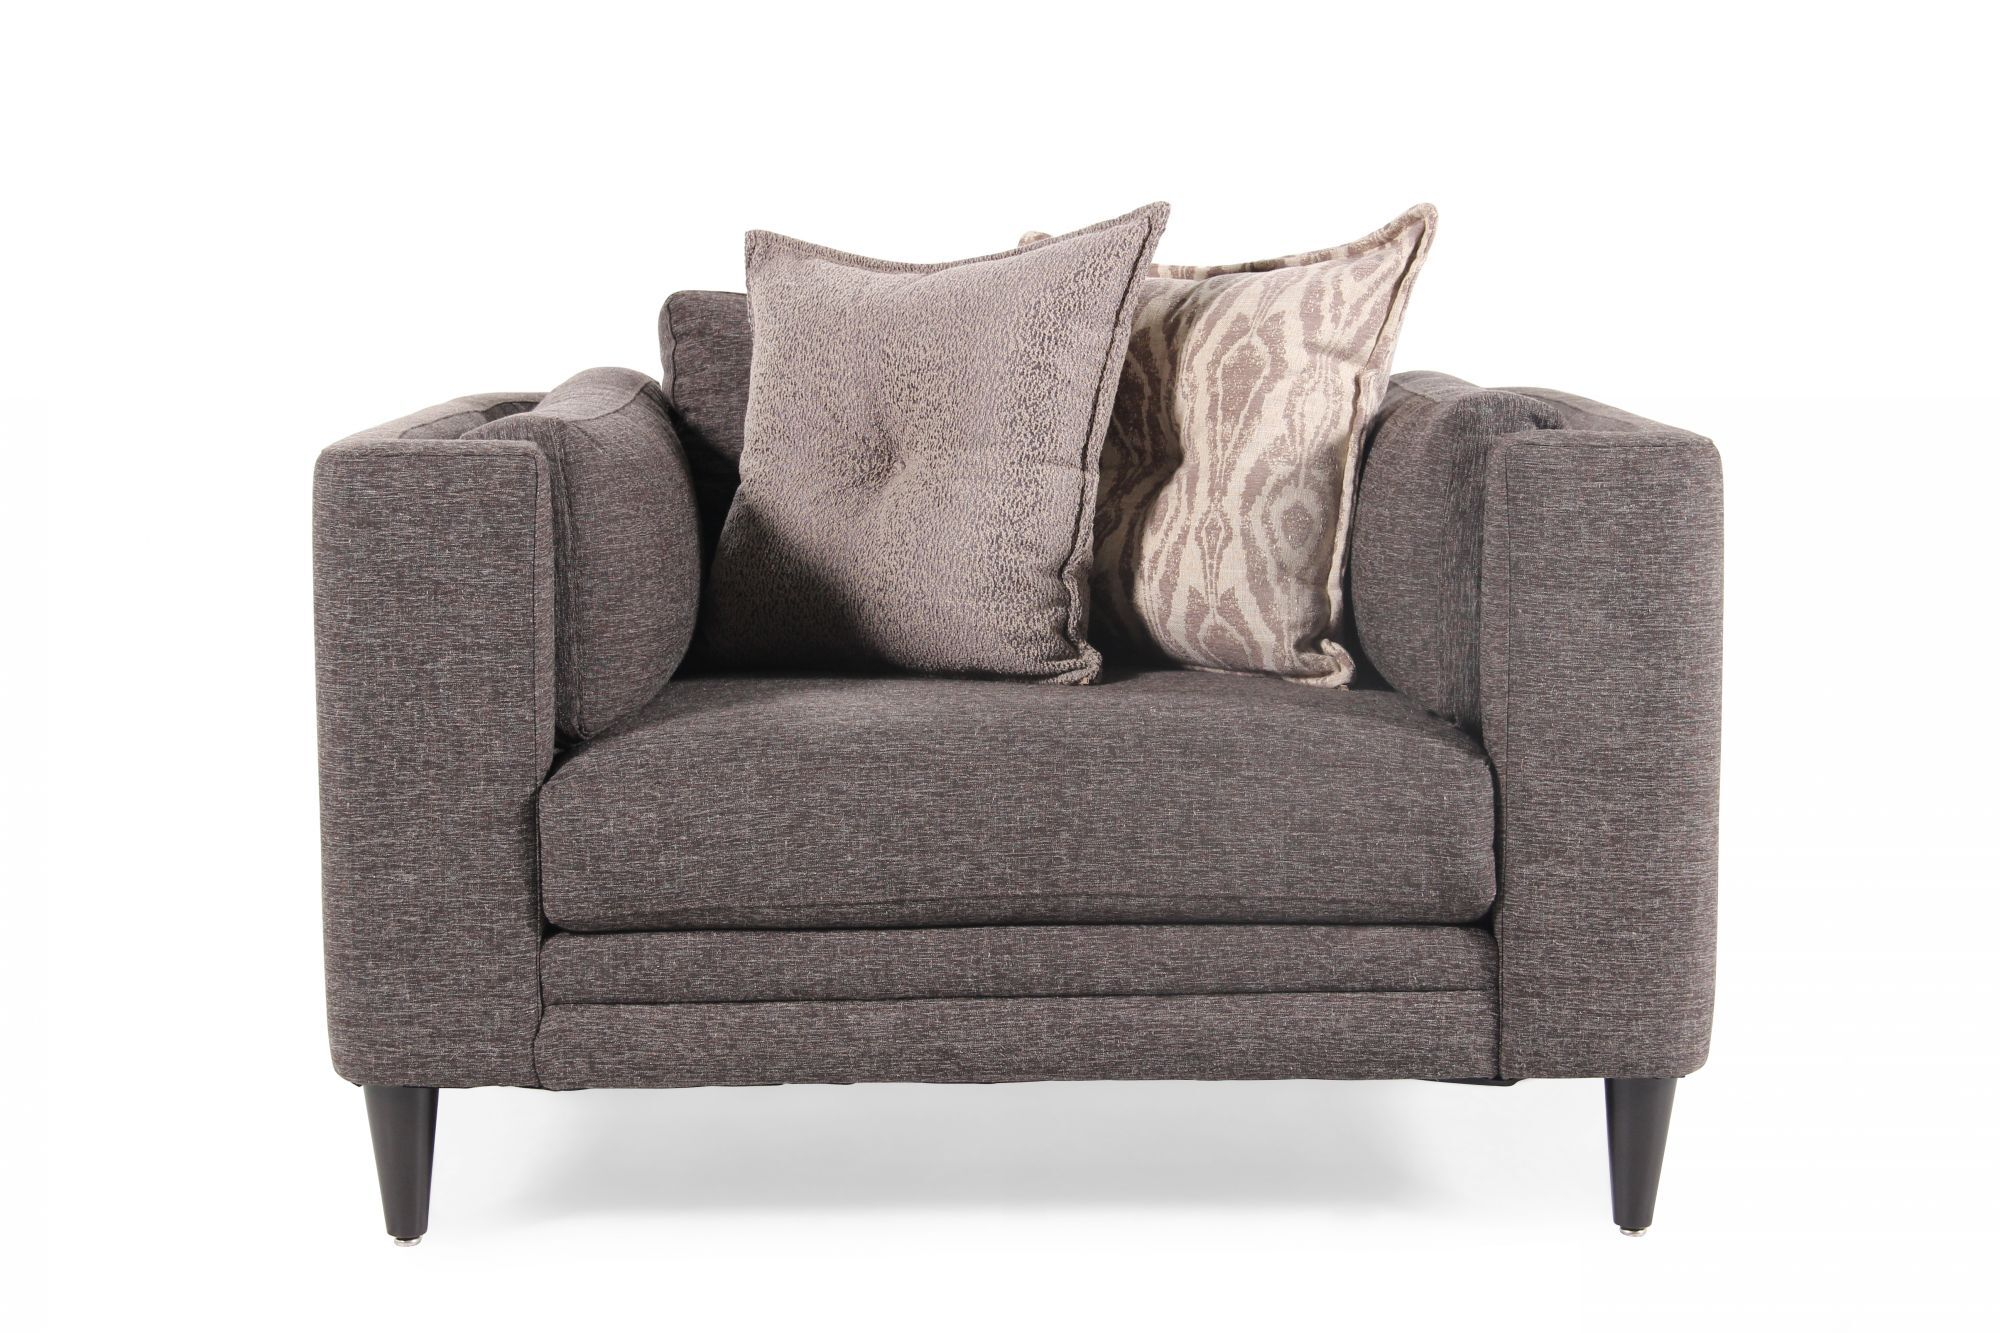 Low Profile Contemporary Arm Chair In Platinum Gray ...